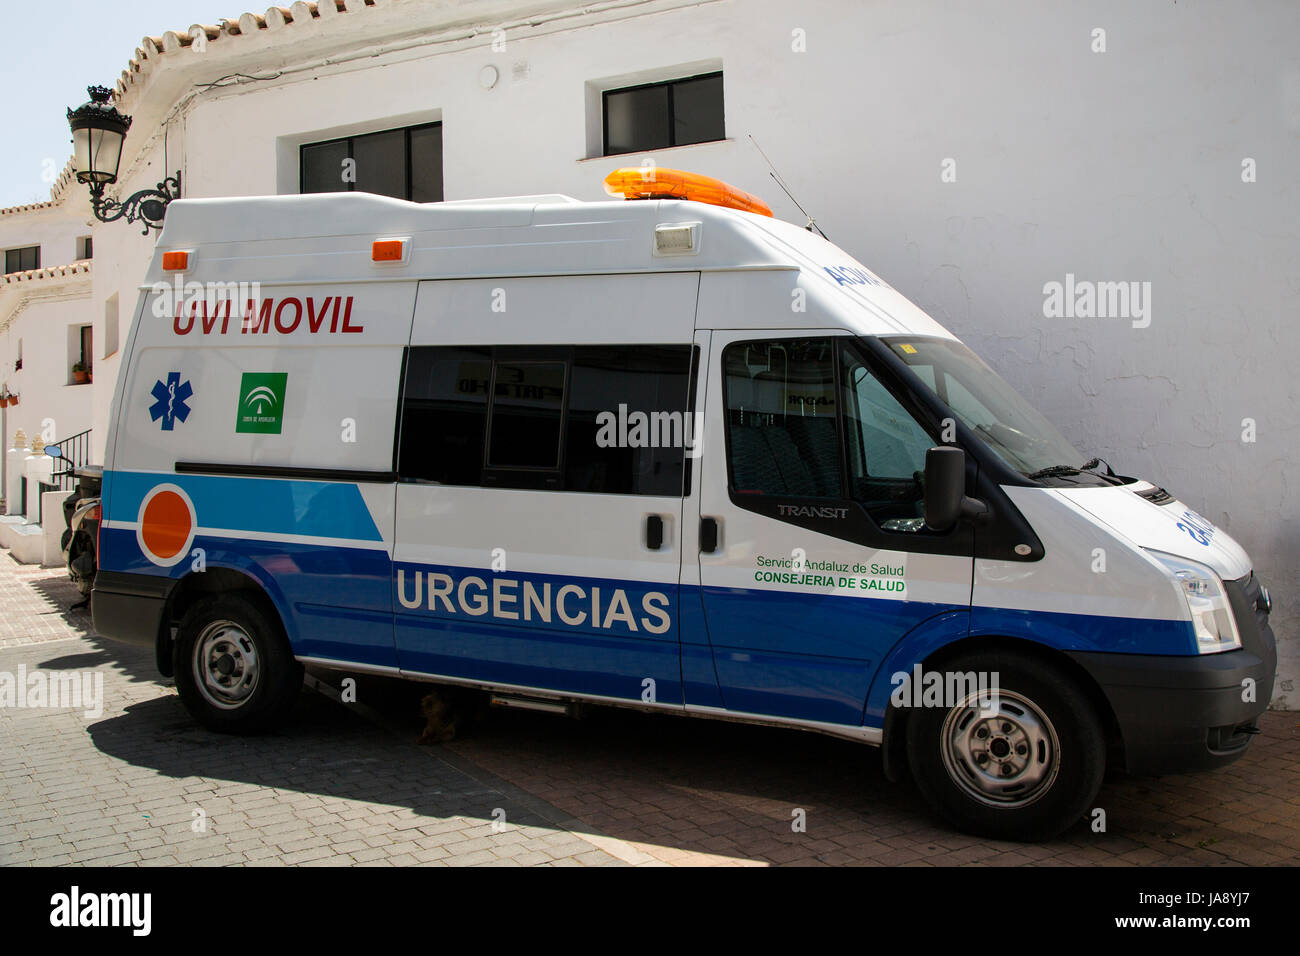 An ambulance parked on a street in Competa,  Andalusia, Spain, Costa del Sol. Stock Photo